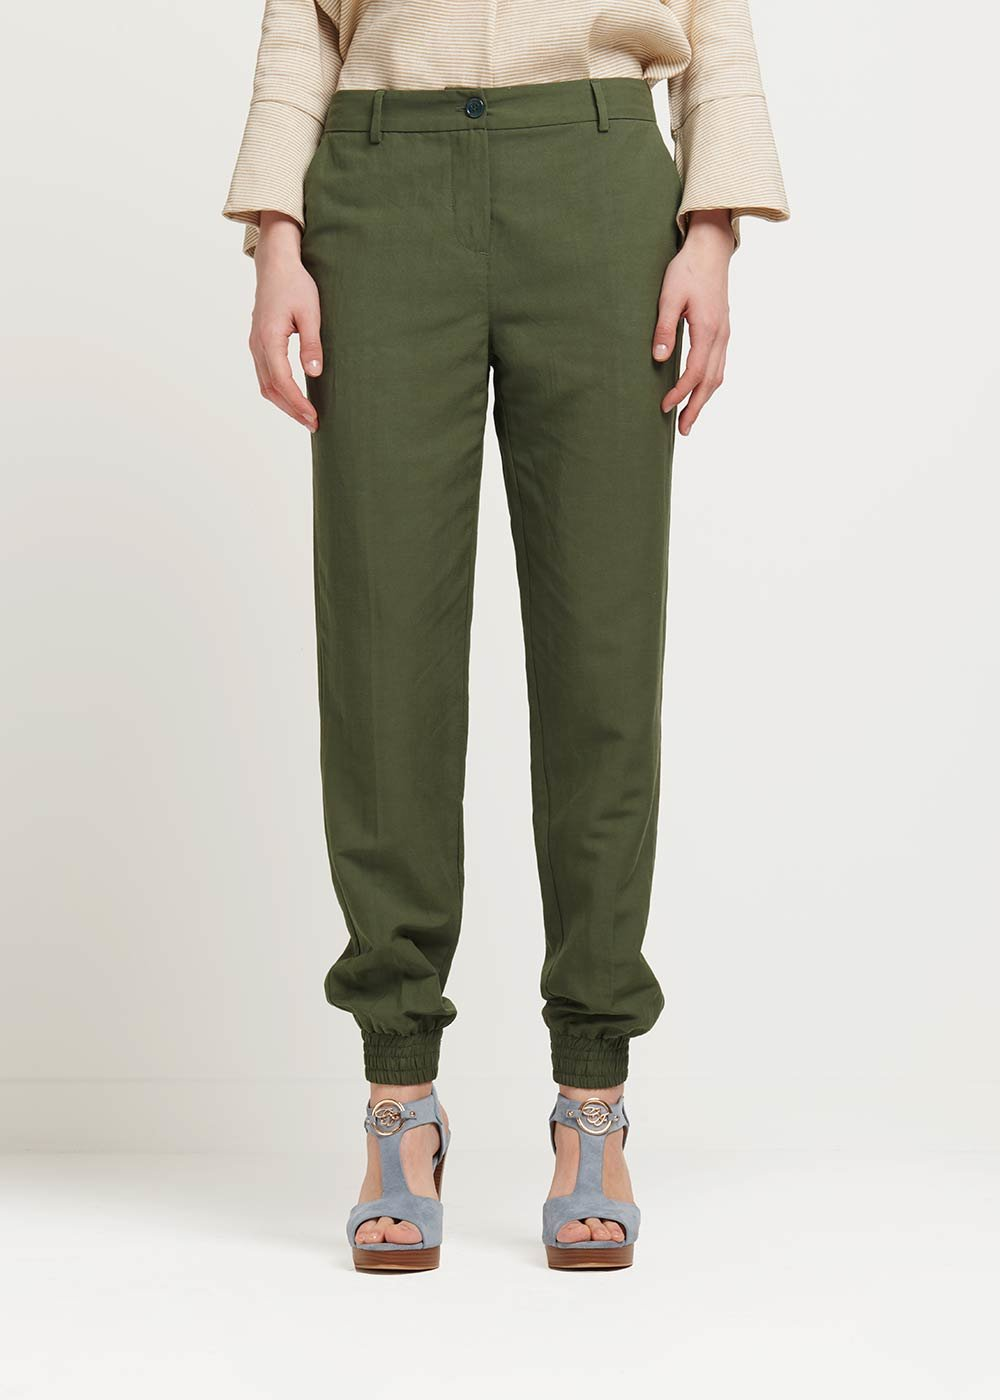 Jane trousers with zipper at the bottom - Green - Woman